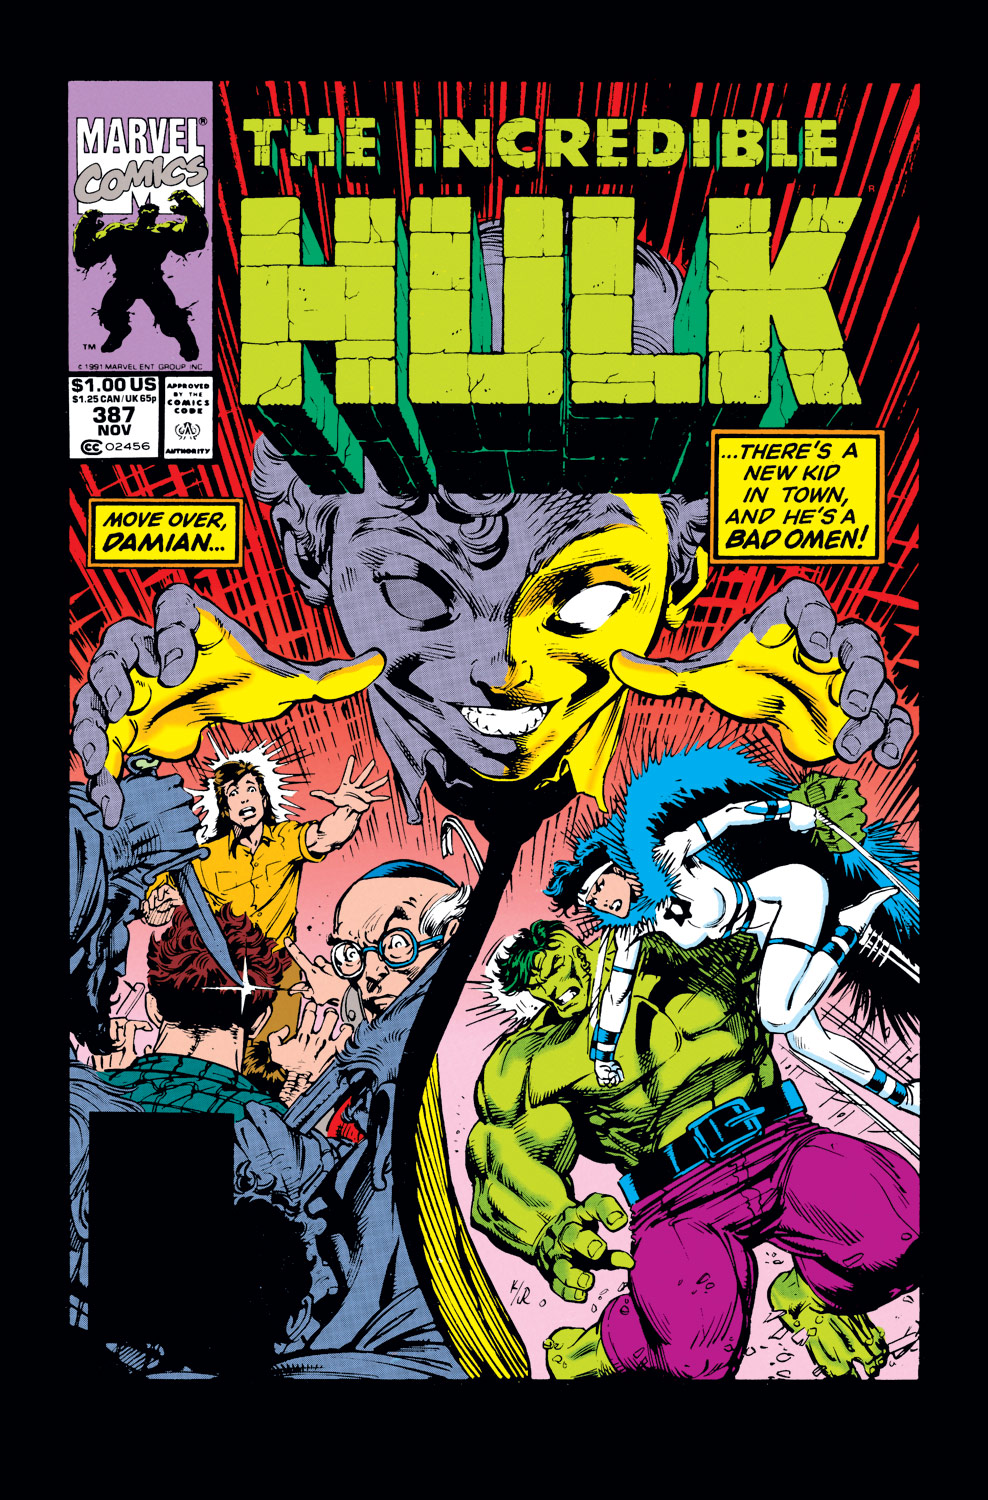 Incredible Hulk (1962) #387